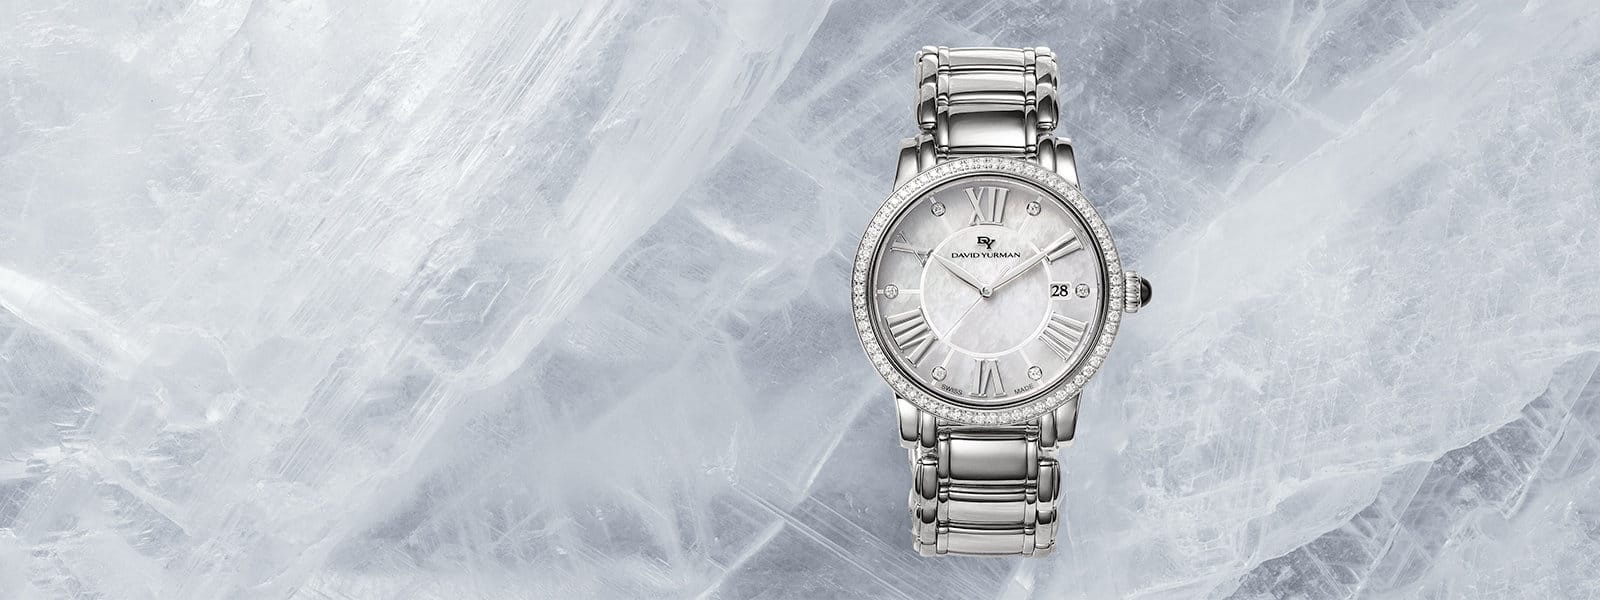 An overhead view of a Classic 30mm Quartz watch in stainless steel with a pavé white diamond bezel and a mother-of-pearl watch face, on a sheet of scratched ice.